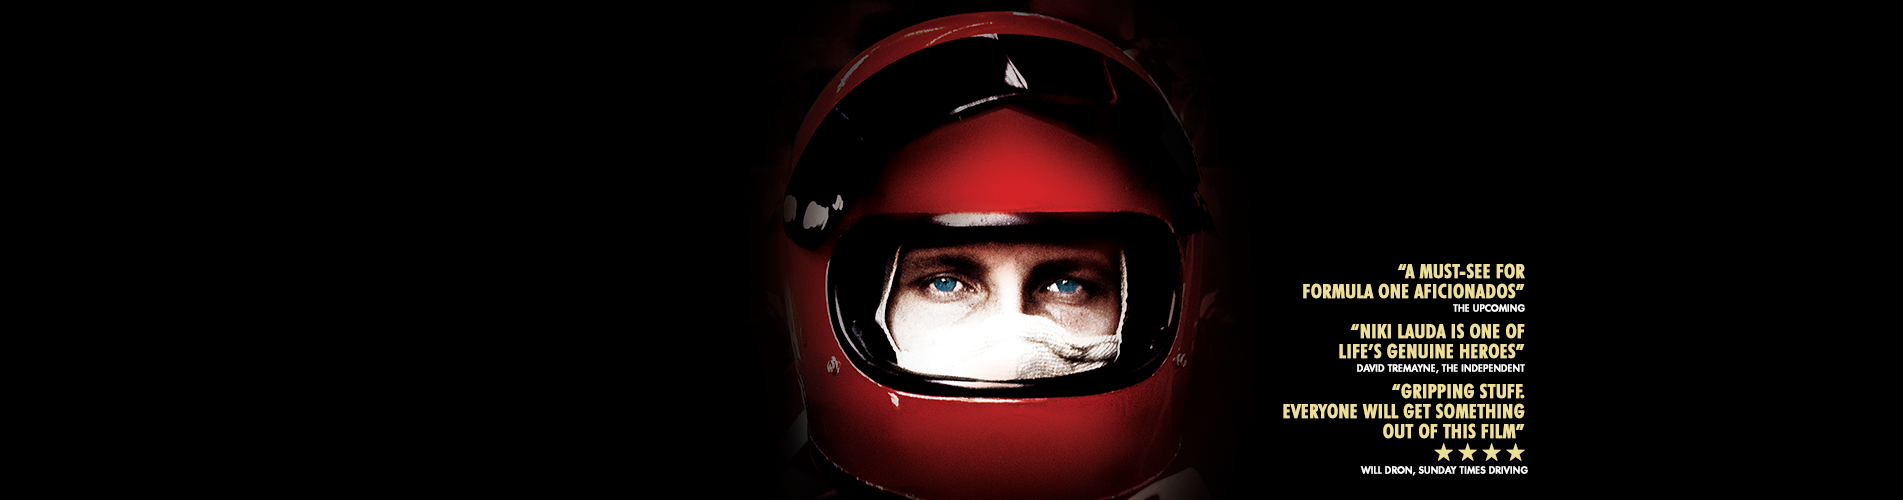 Lauda - The Untold Story